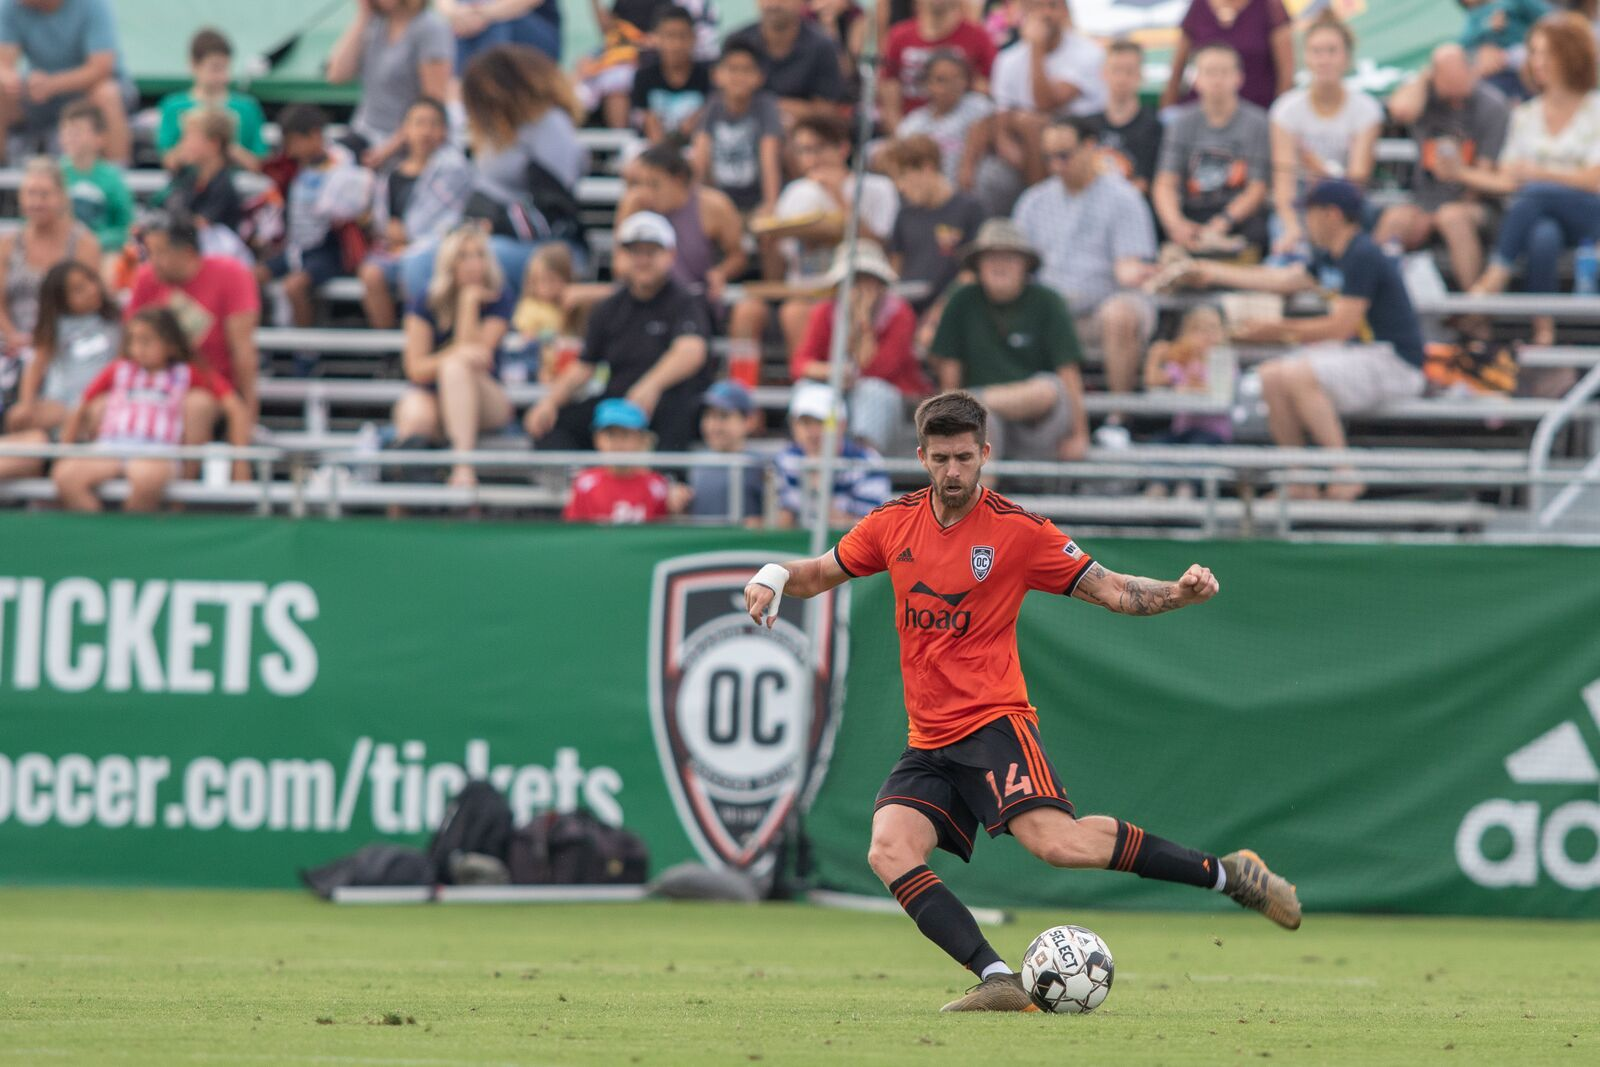 Quinn and his left foot nearly found a brace as his 90th minute free kick clanged off of the post.  Photo courtesy of Liza Rosales/ Orange County SC.